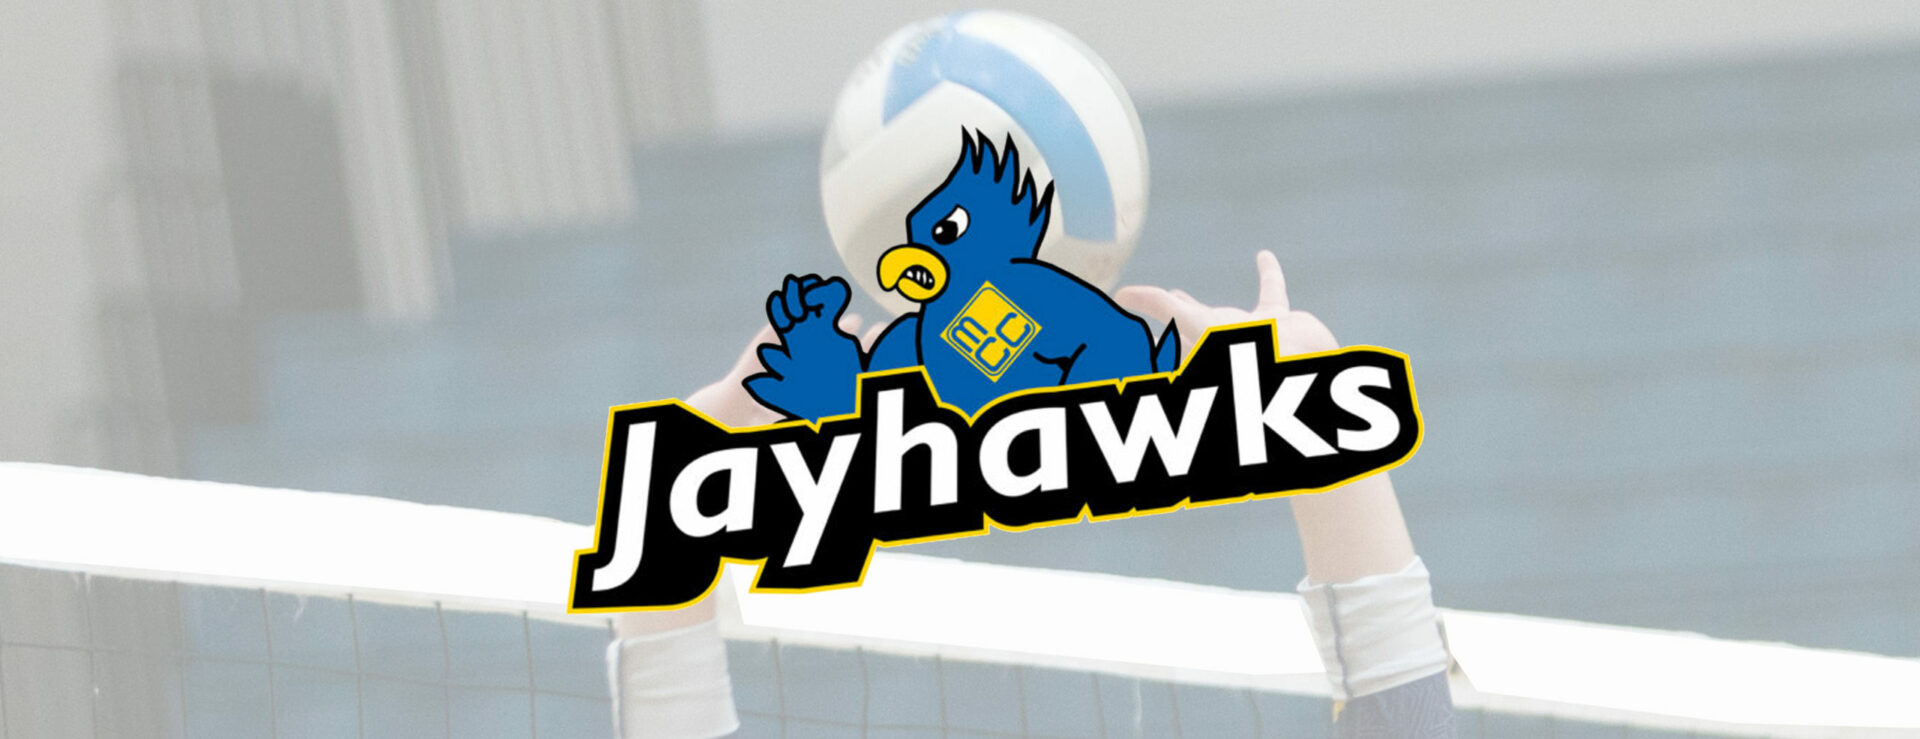 MCC Jayhawks improve to 10-3 overall with win over Kellogg CC